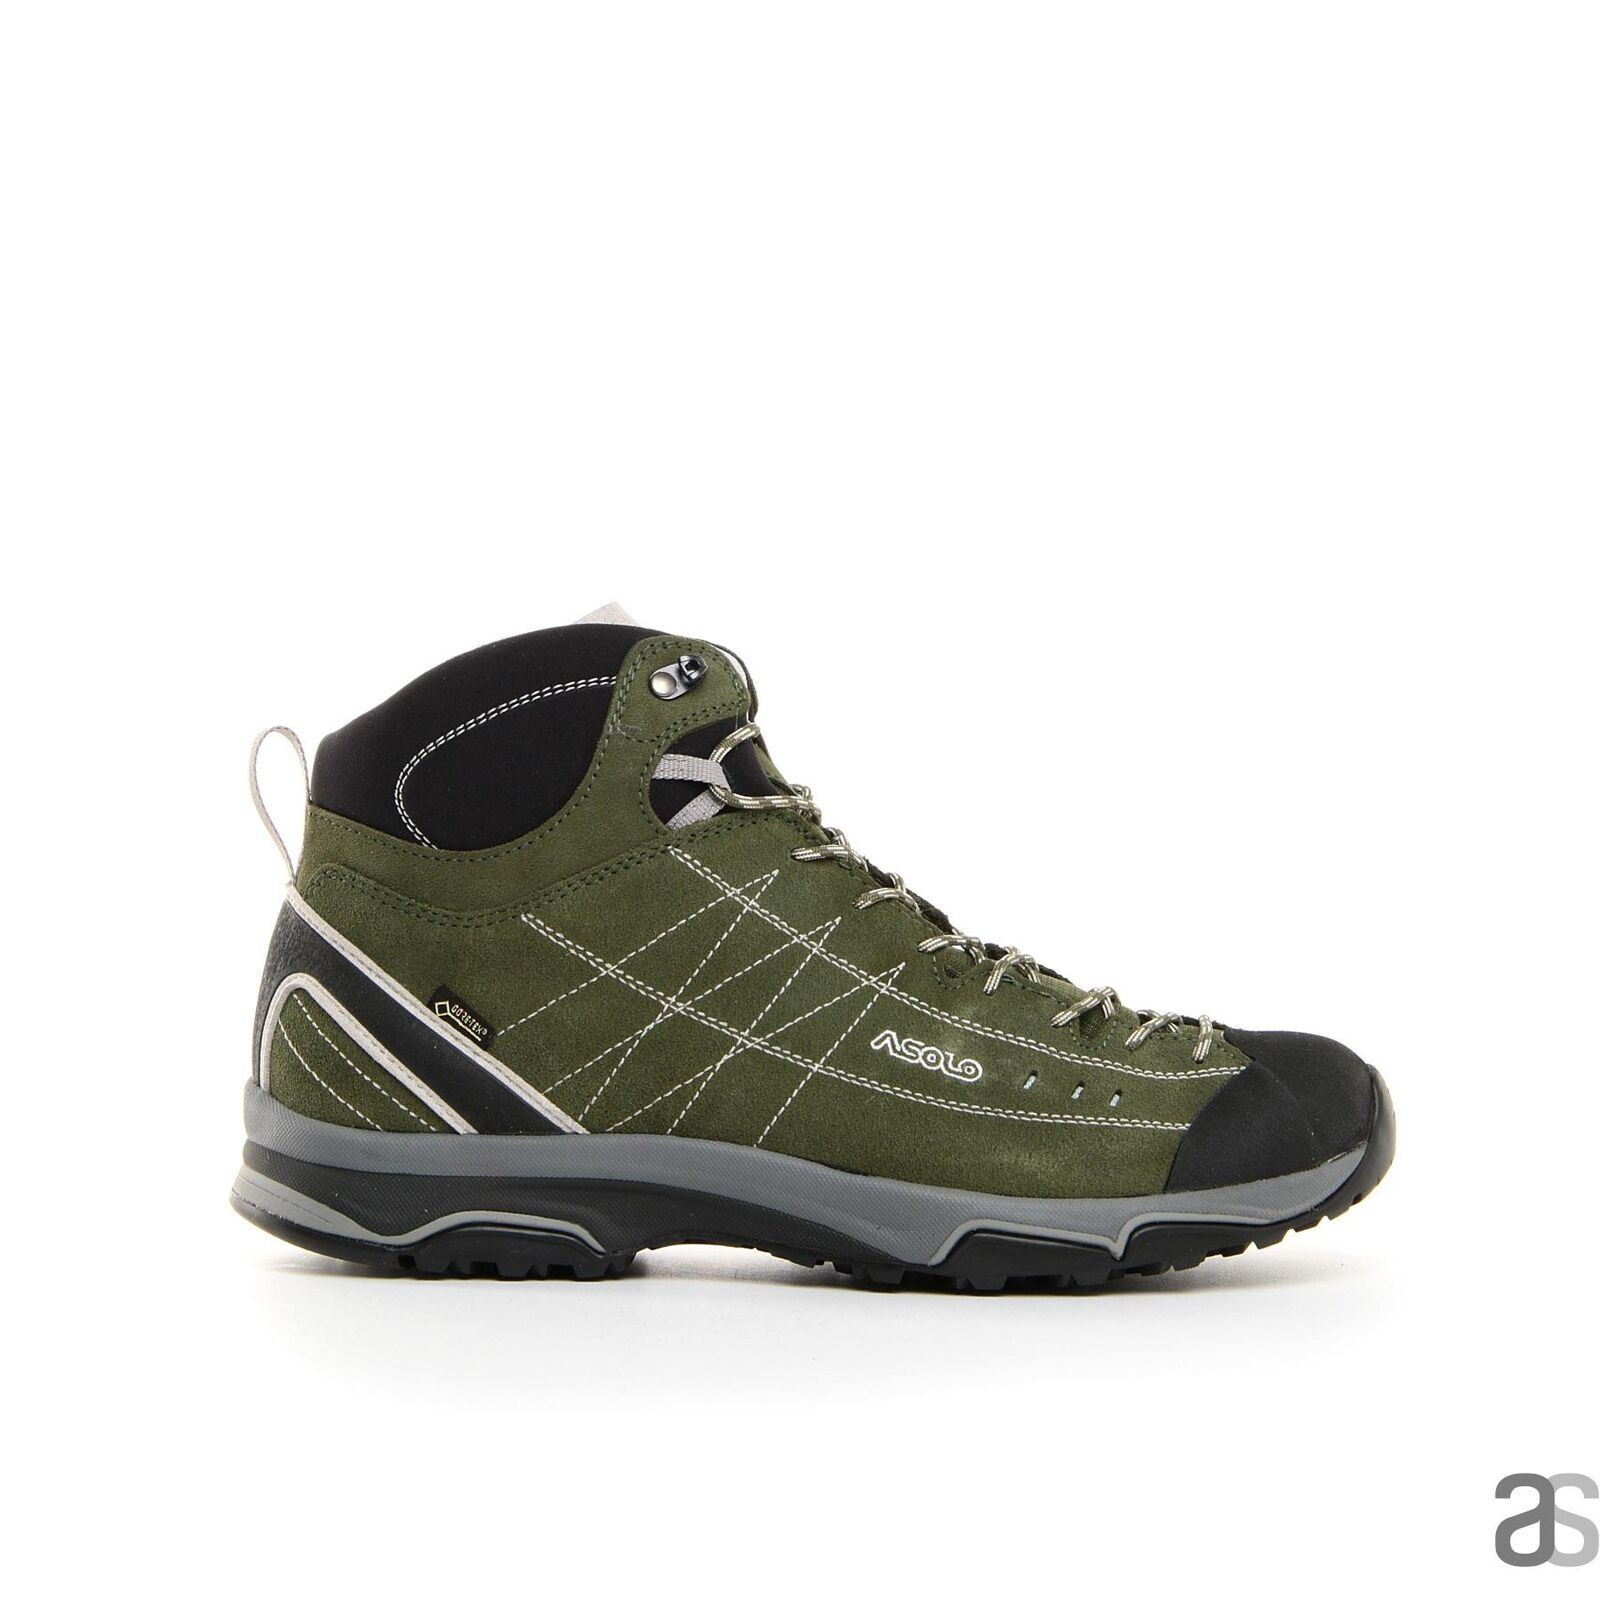 ASOLO NUCLEON MID GV shoes RANDO HOMME A40028 A750